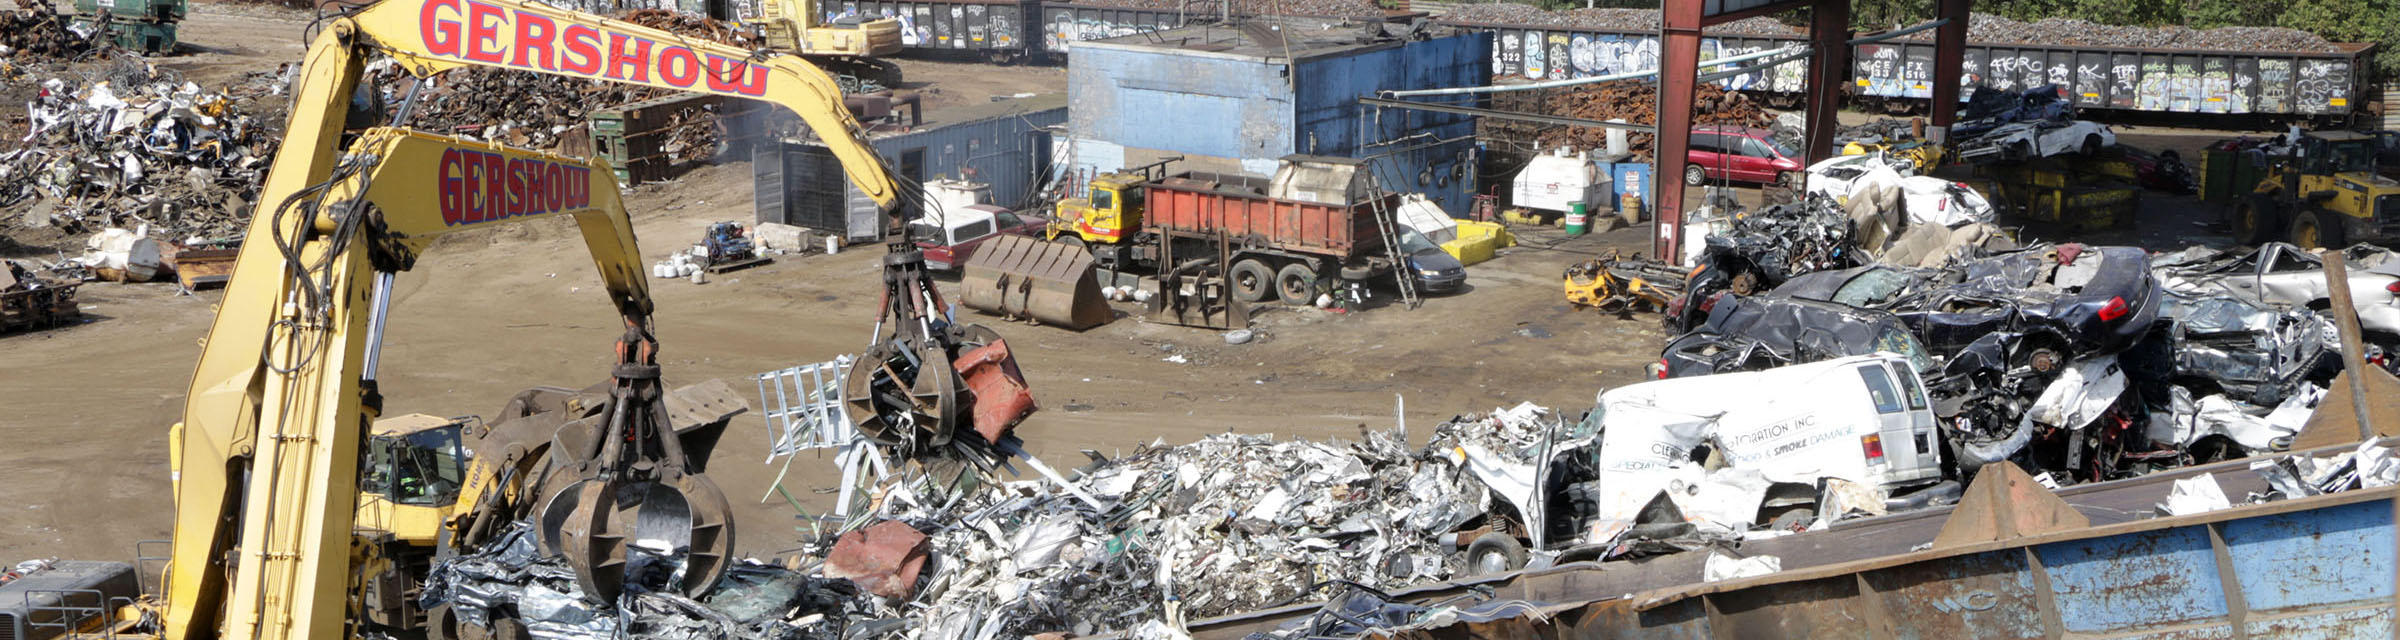 Gershow Recycling Corp image 13